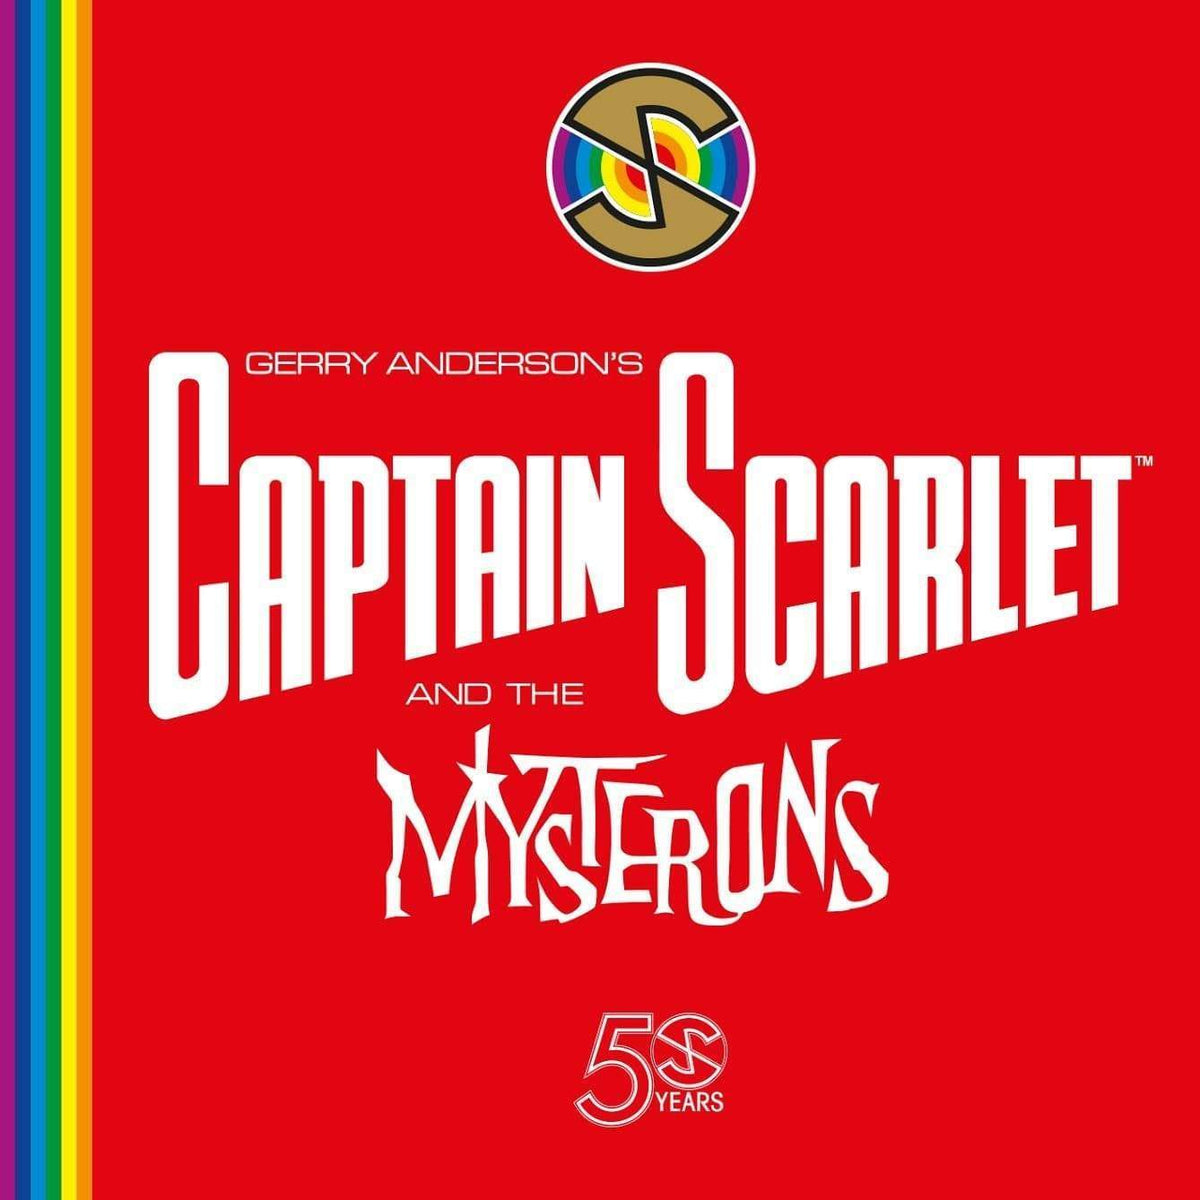 Captain Scarlet - Spectrum File 2 Audio Drama Series - The Gerry Anderson Store